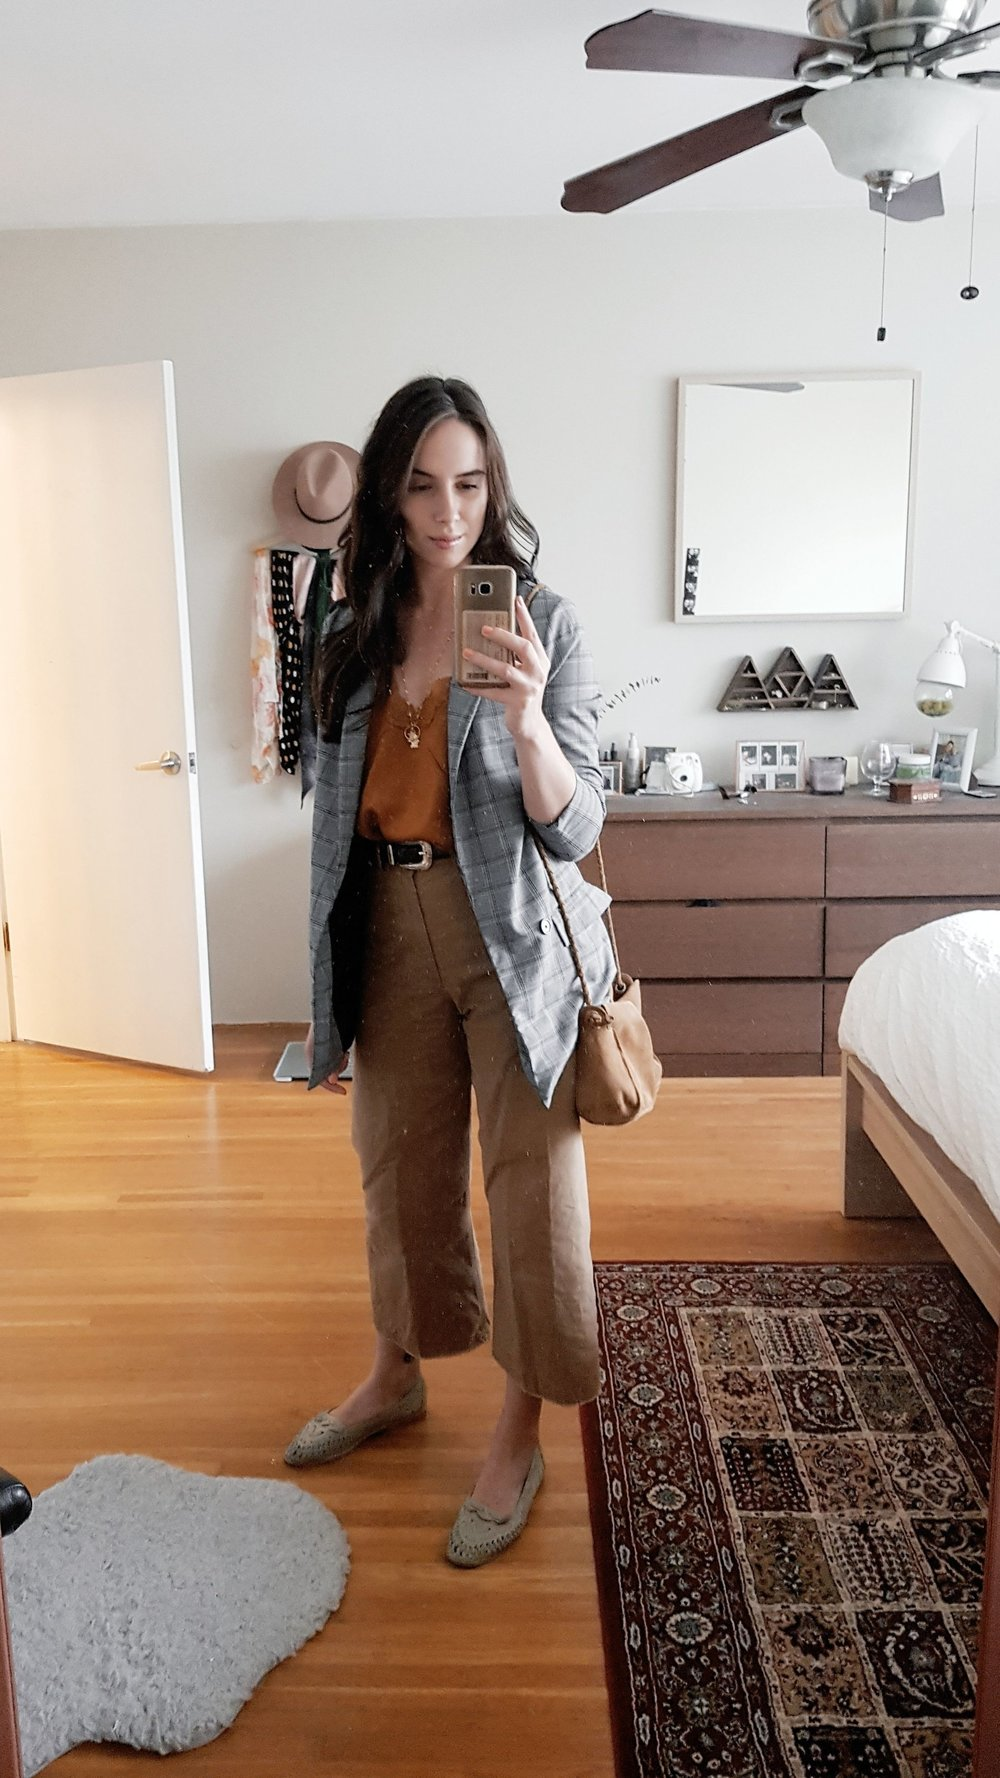 MONDAY - 8th & Main camisole, Aritzia pants, vintage shoes, Dynamite blazer (similar), Zara purse*My fave outfit of the week, although I had to say goodbye to that top at the end of the day - it ripped down the side and was beyond repair.